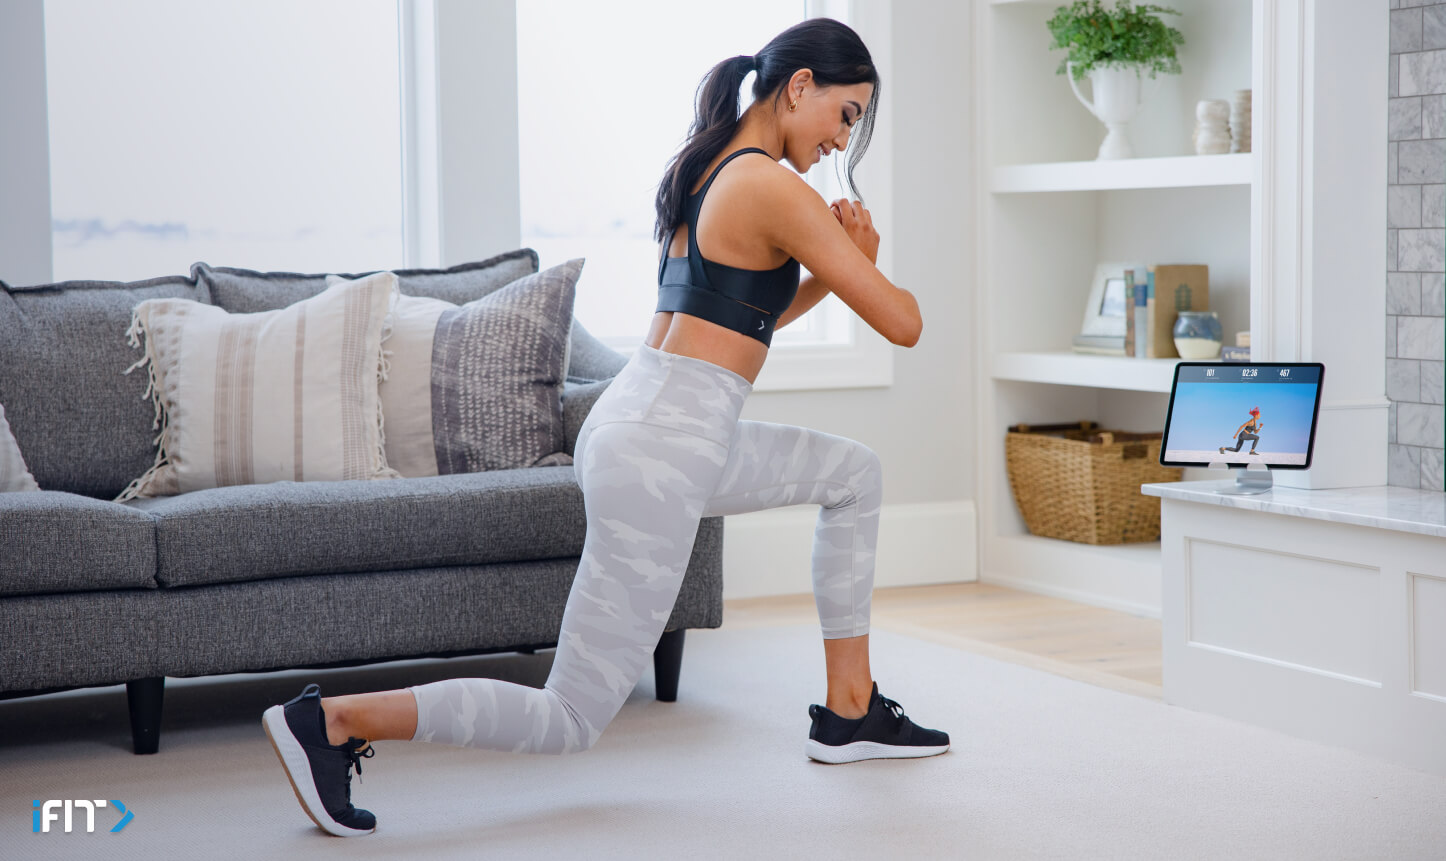 Woman completes iFIT bodyweight exercises